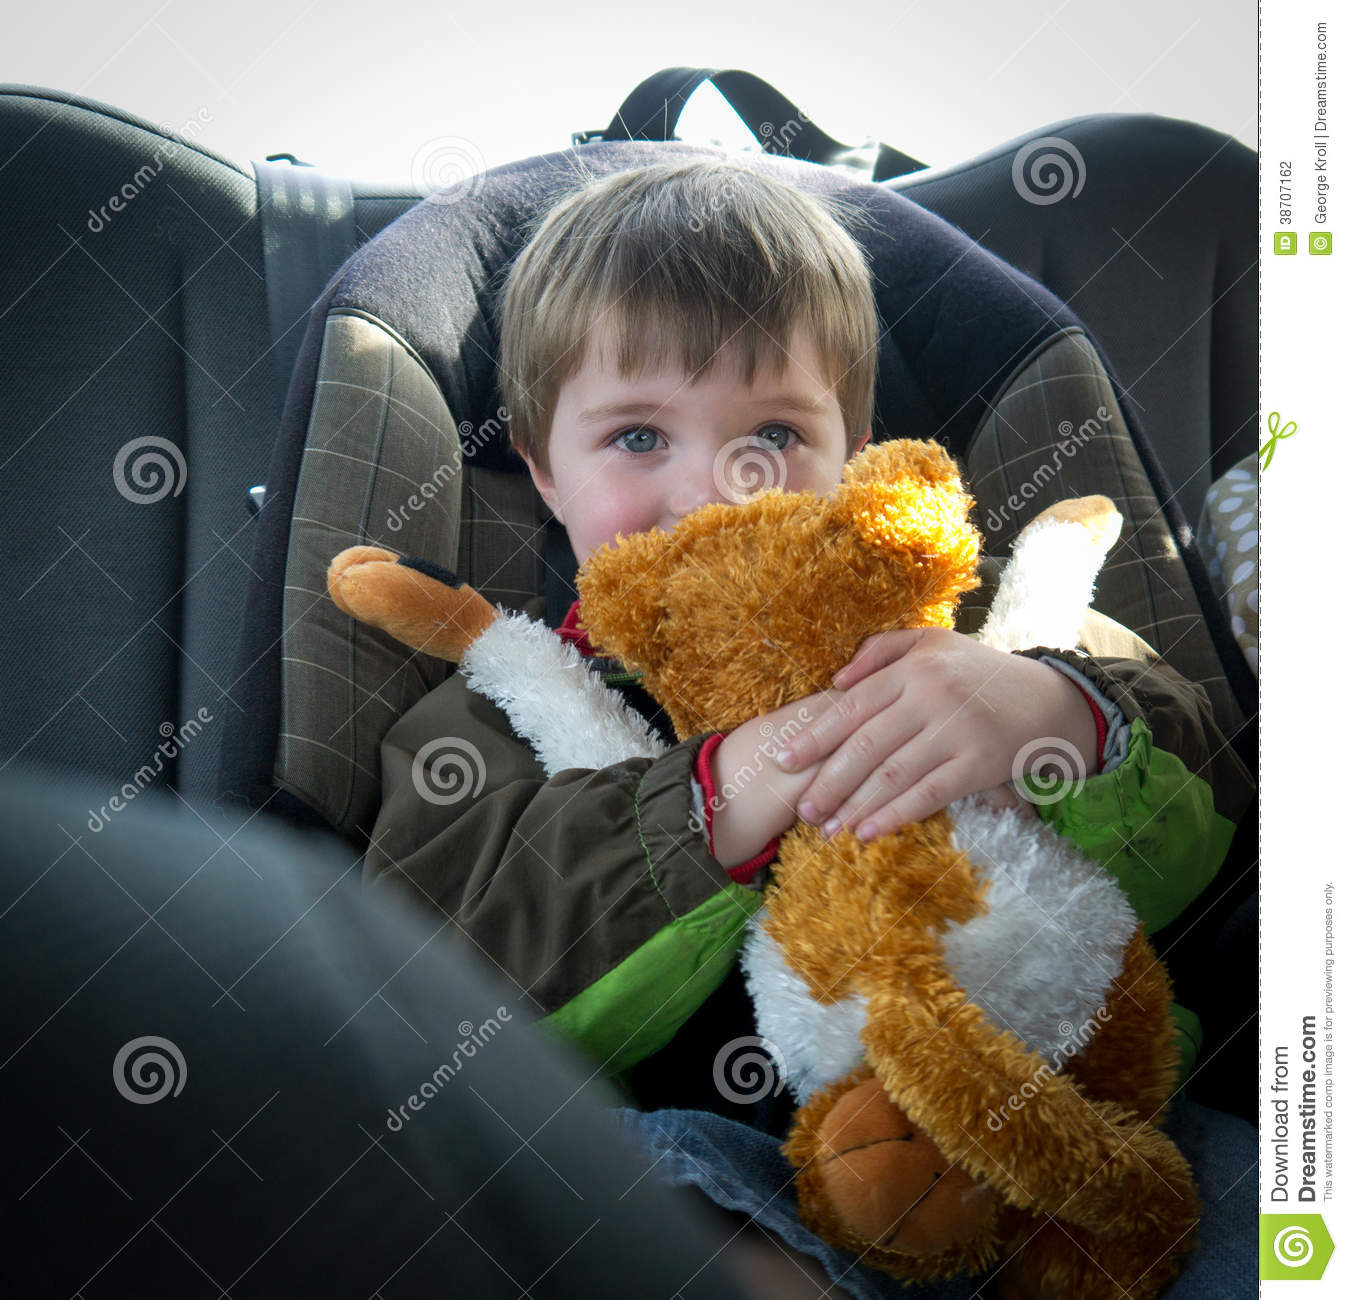 On the road again. Child in Car Seat